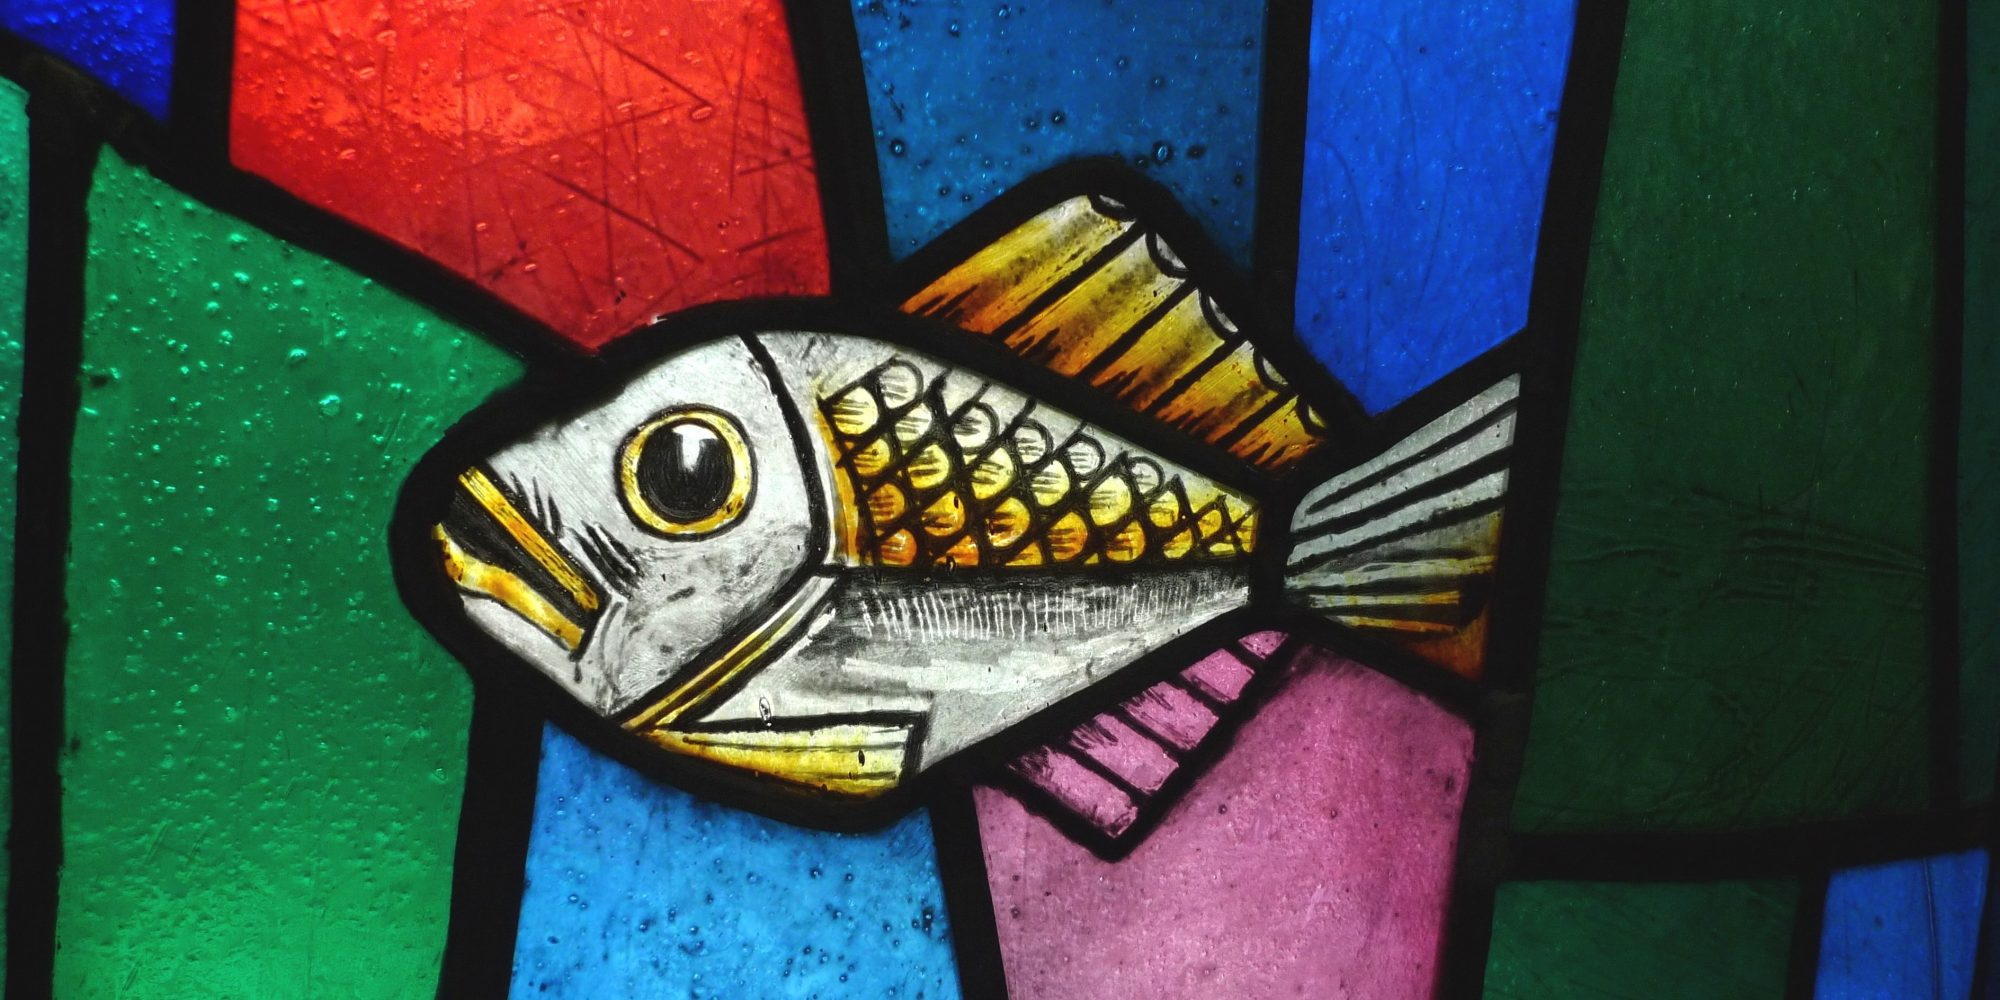 Stained glass detail of fish with decorative coloured shapes around it - Coventry UK City of Culture 2021